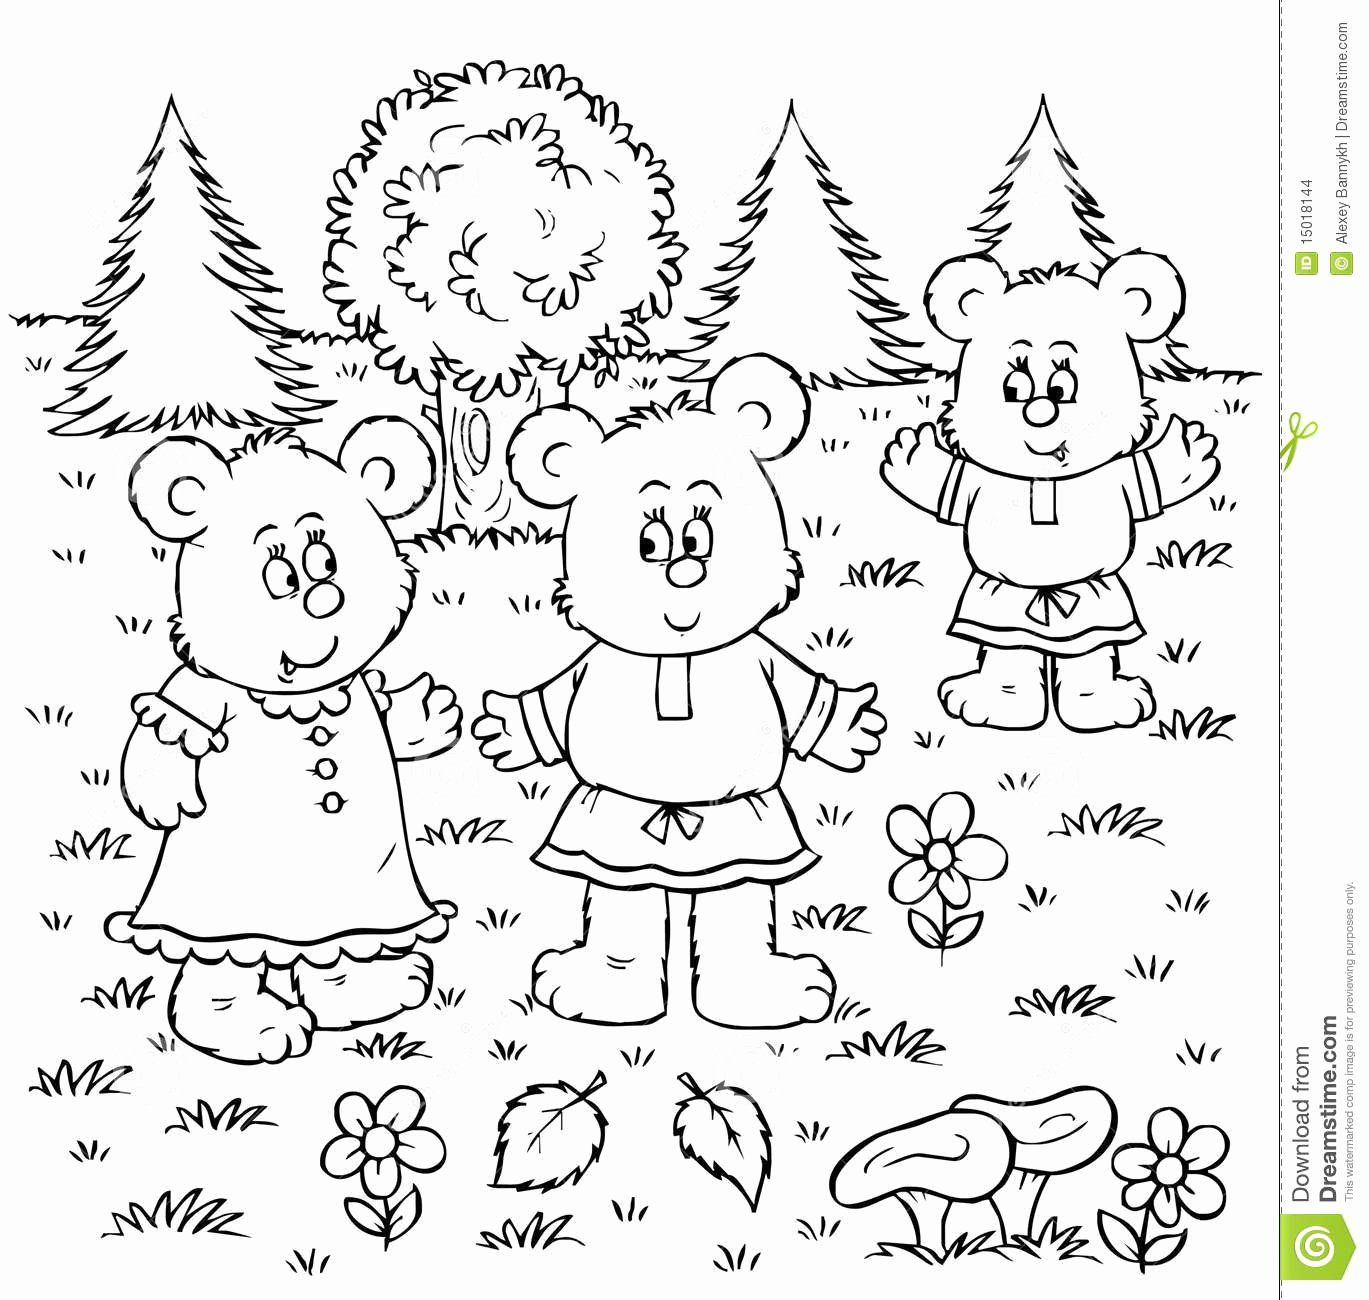 Goldilocks And The Three Bears Coloring Page Awesome Three Bears Stock Image Bear Coloring Pages Coloring Pages Goldilocks And The Three Bears